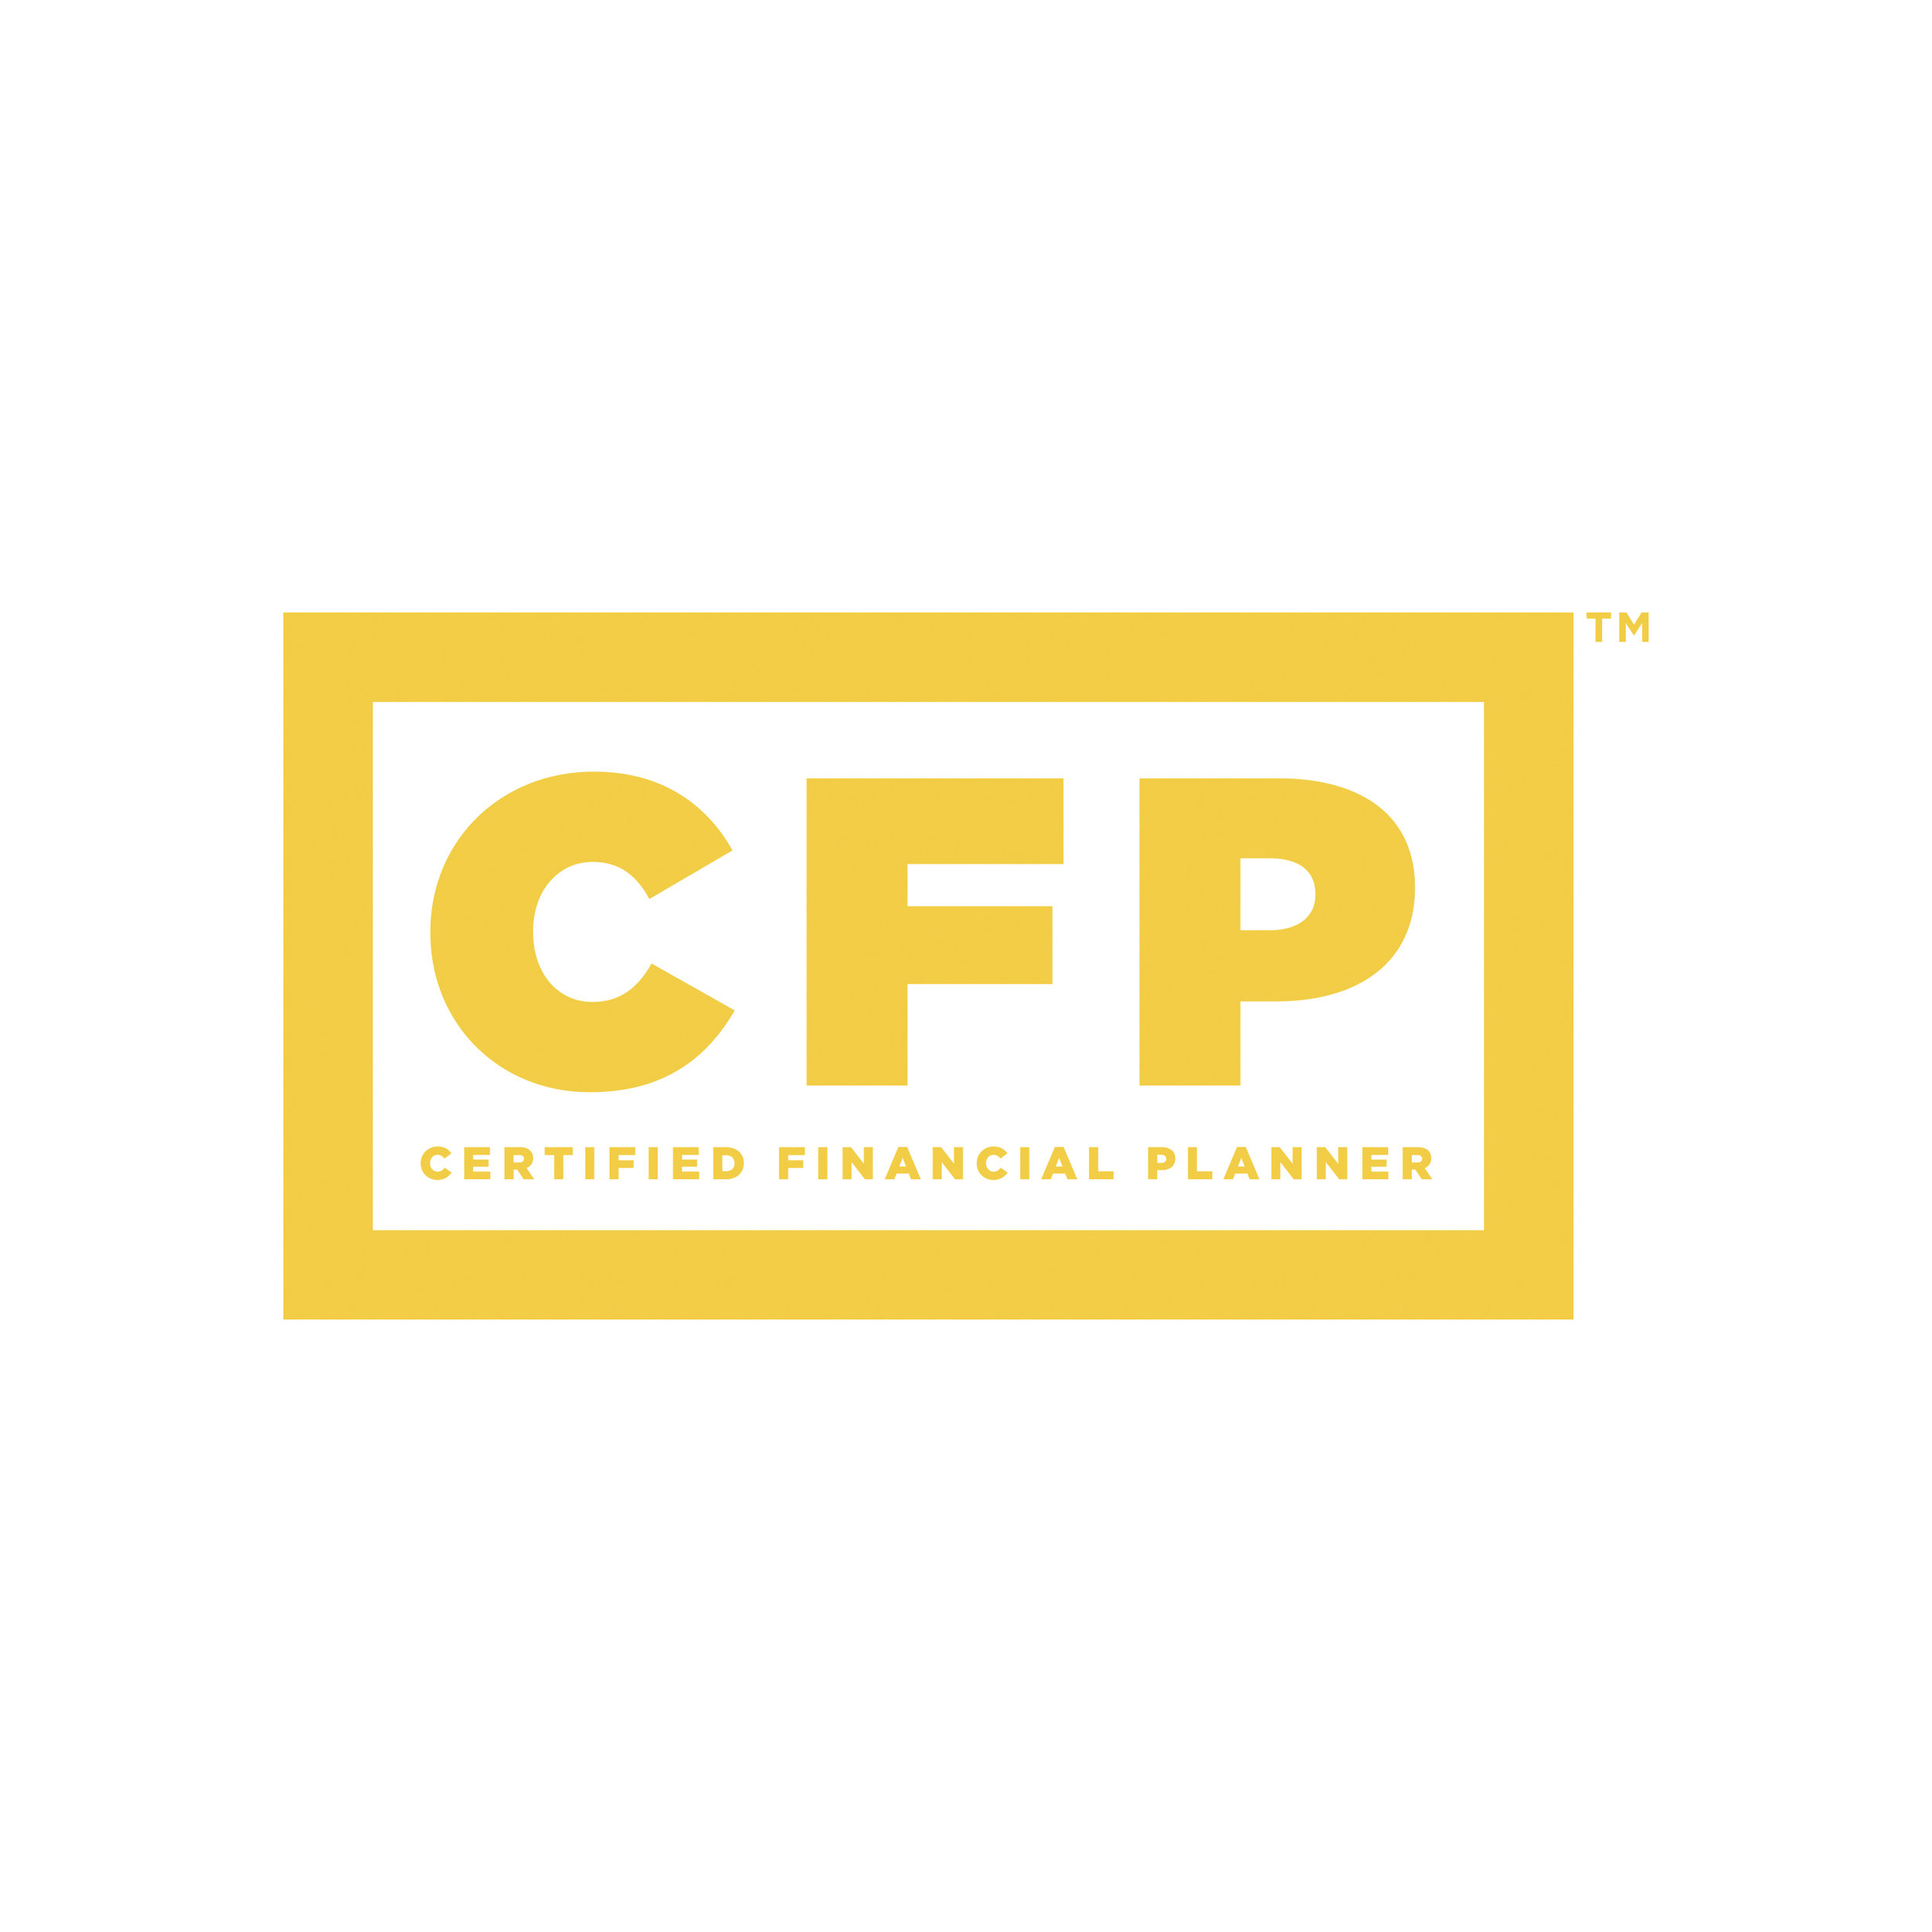 Certified Financial Planner™